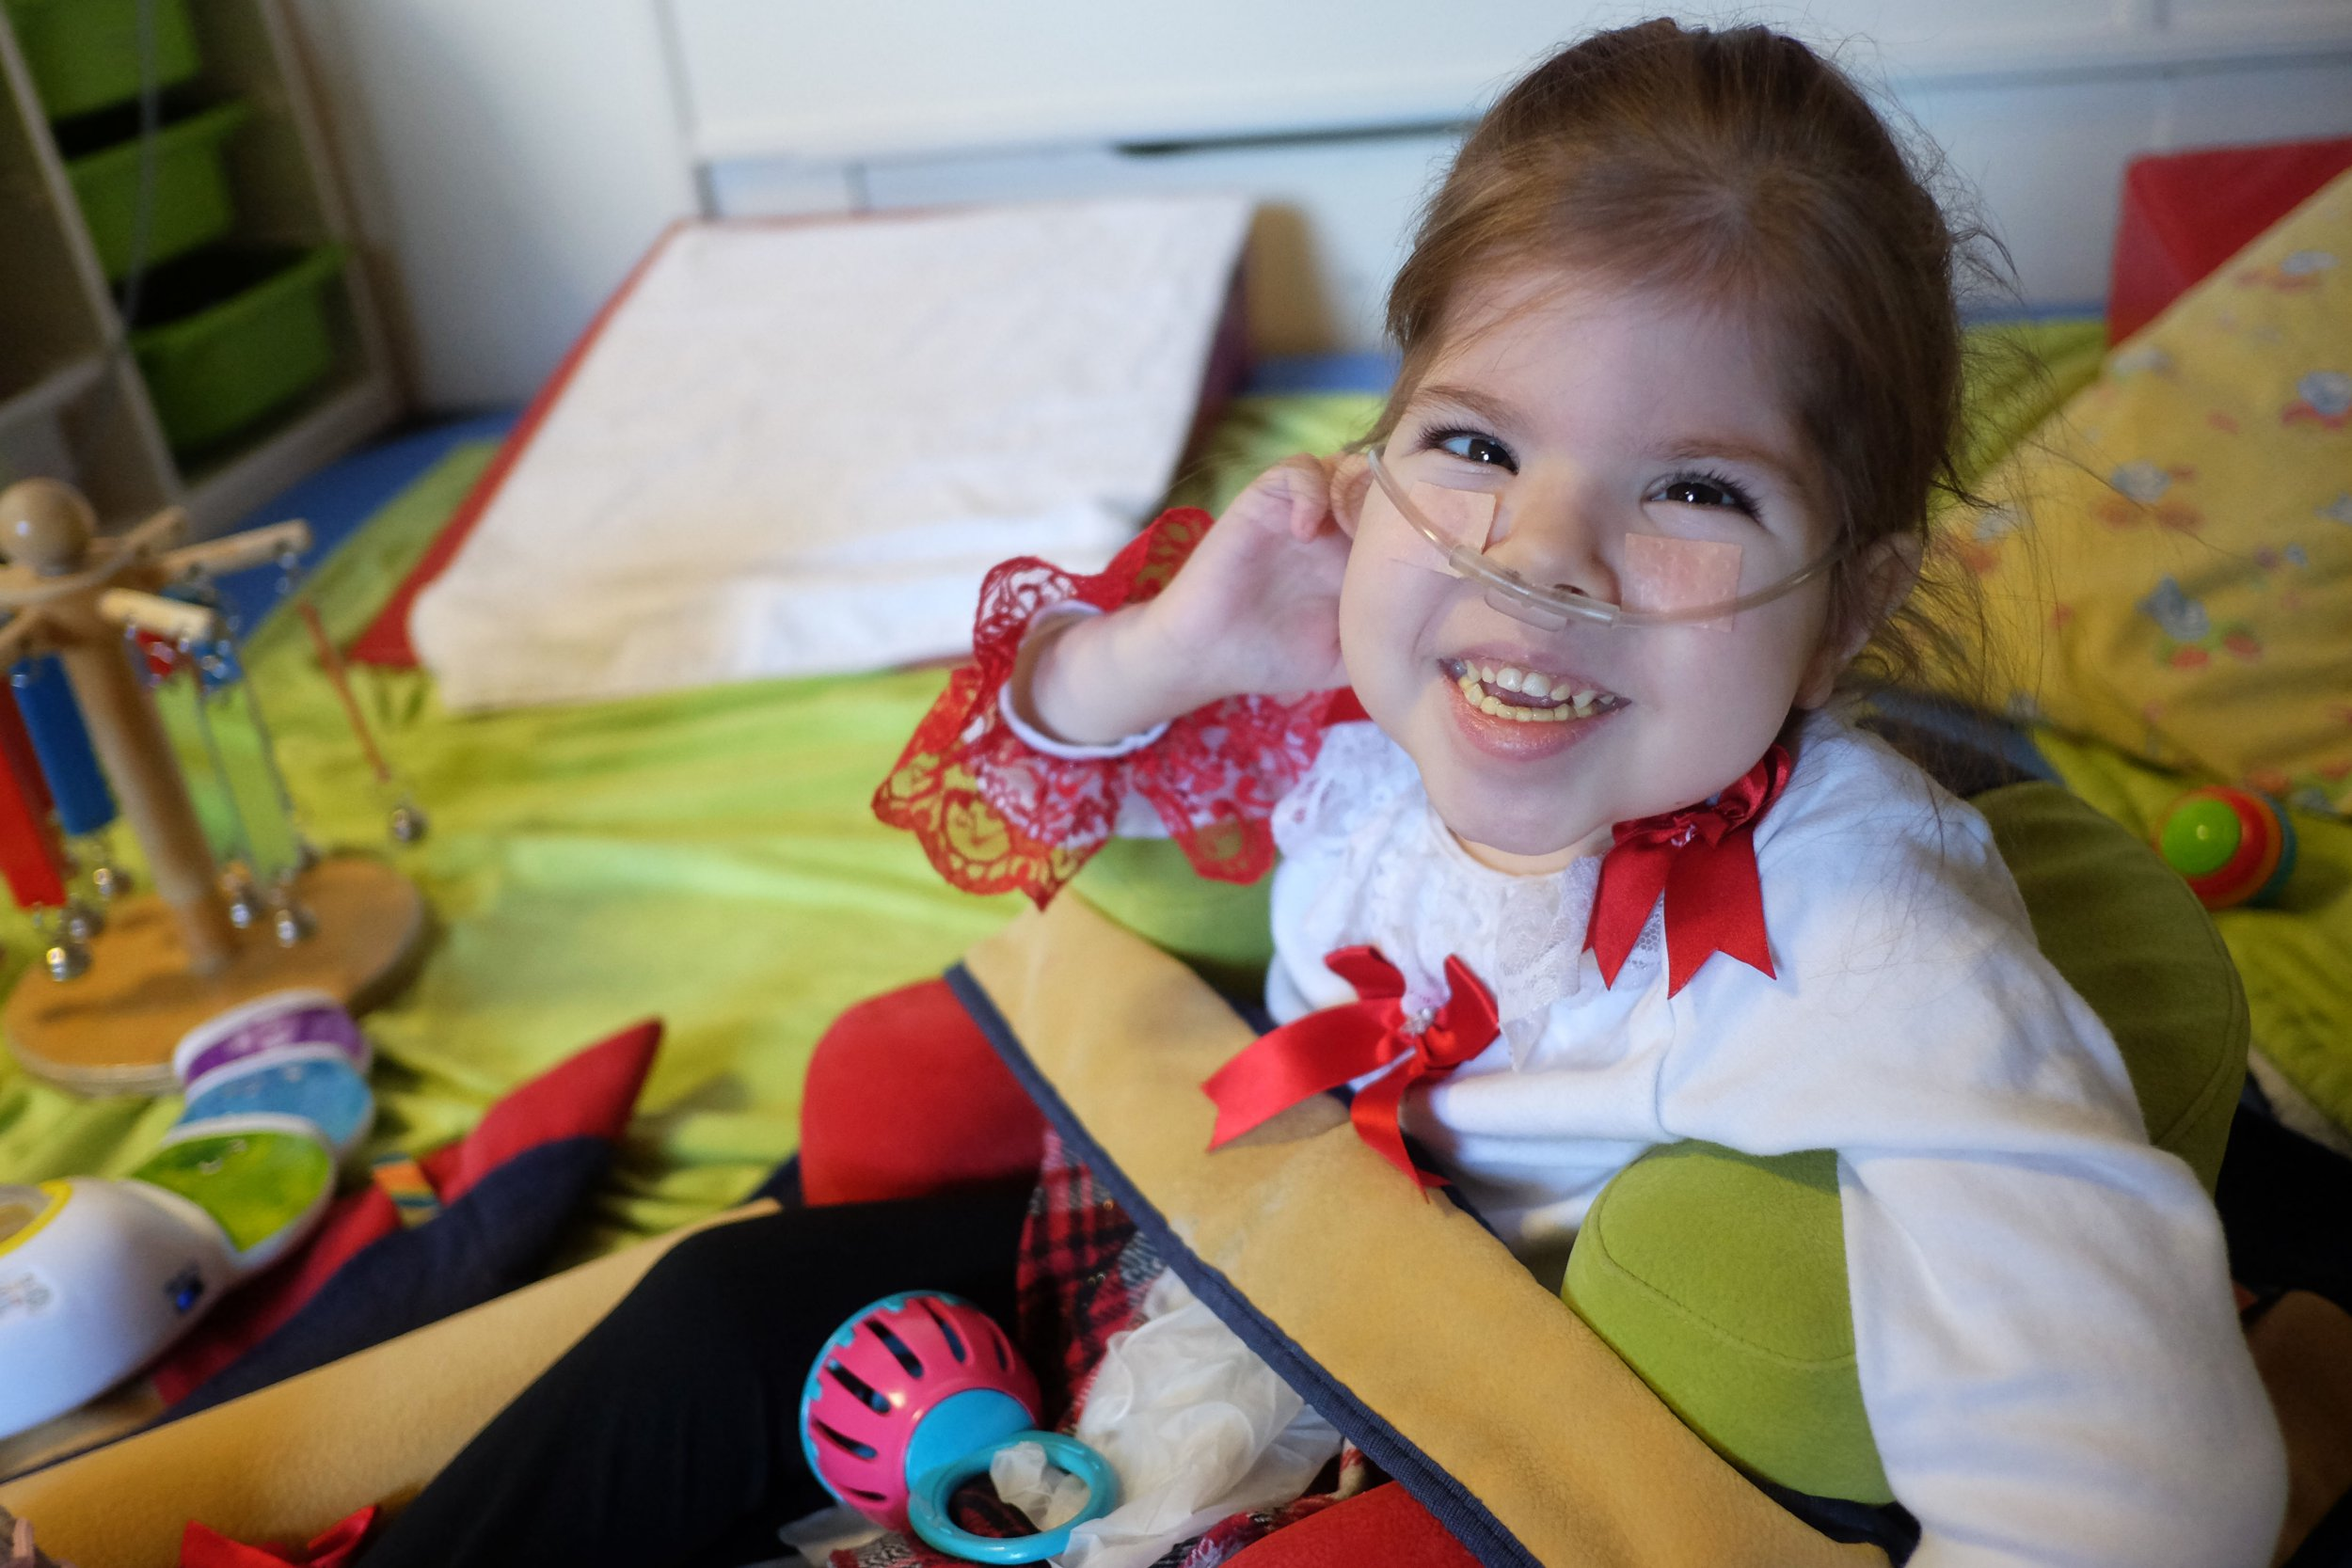 Layla Bukorovic, 5, who had troubles getting her feeding tube changed which caused her problems. Layla at Zoe's Place, Eston.